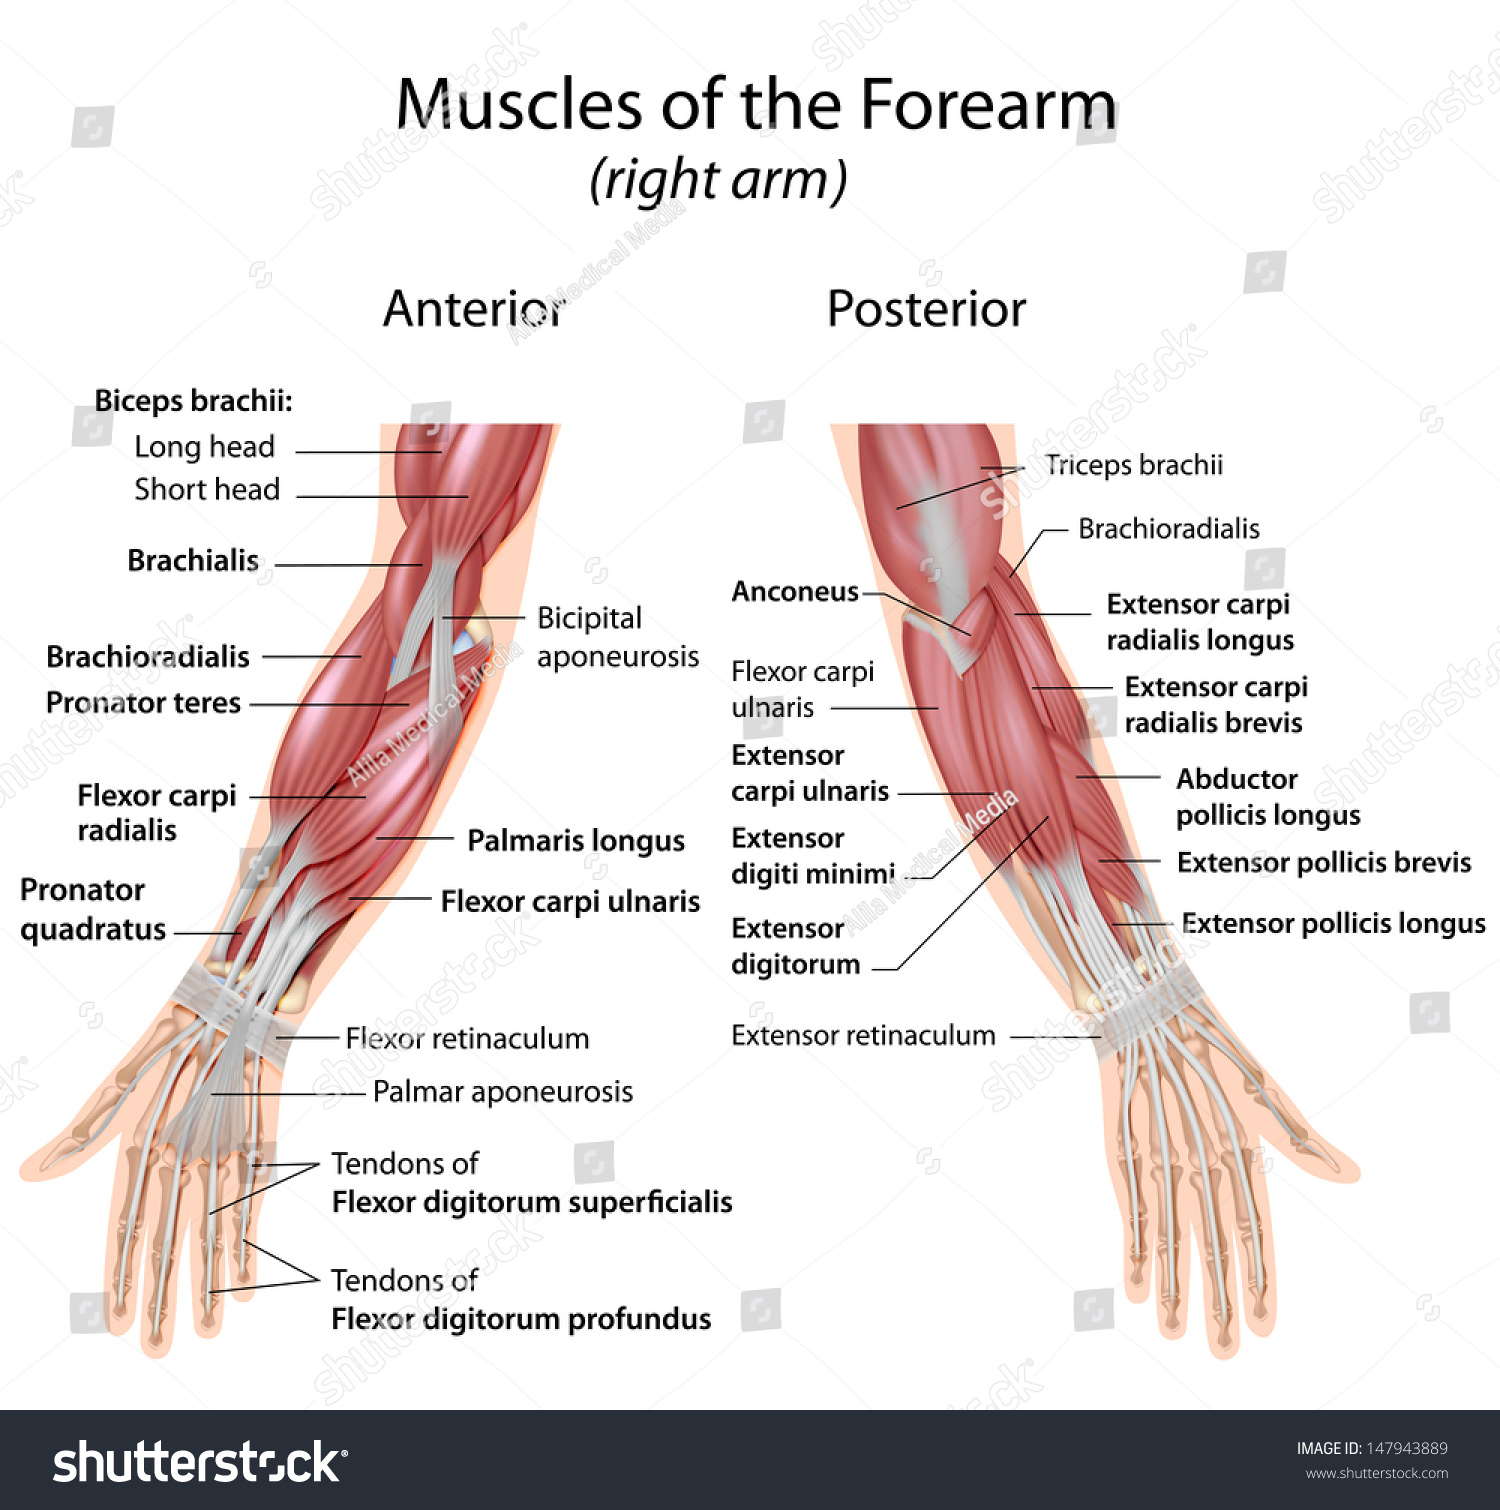 Royalty Free Stock Illustration Of Muscles Forearm Anterior